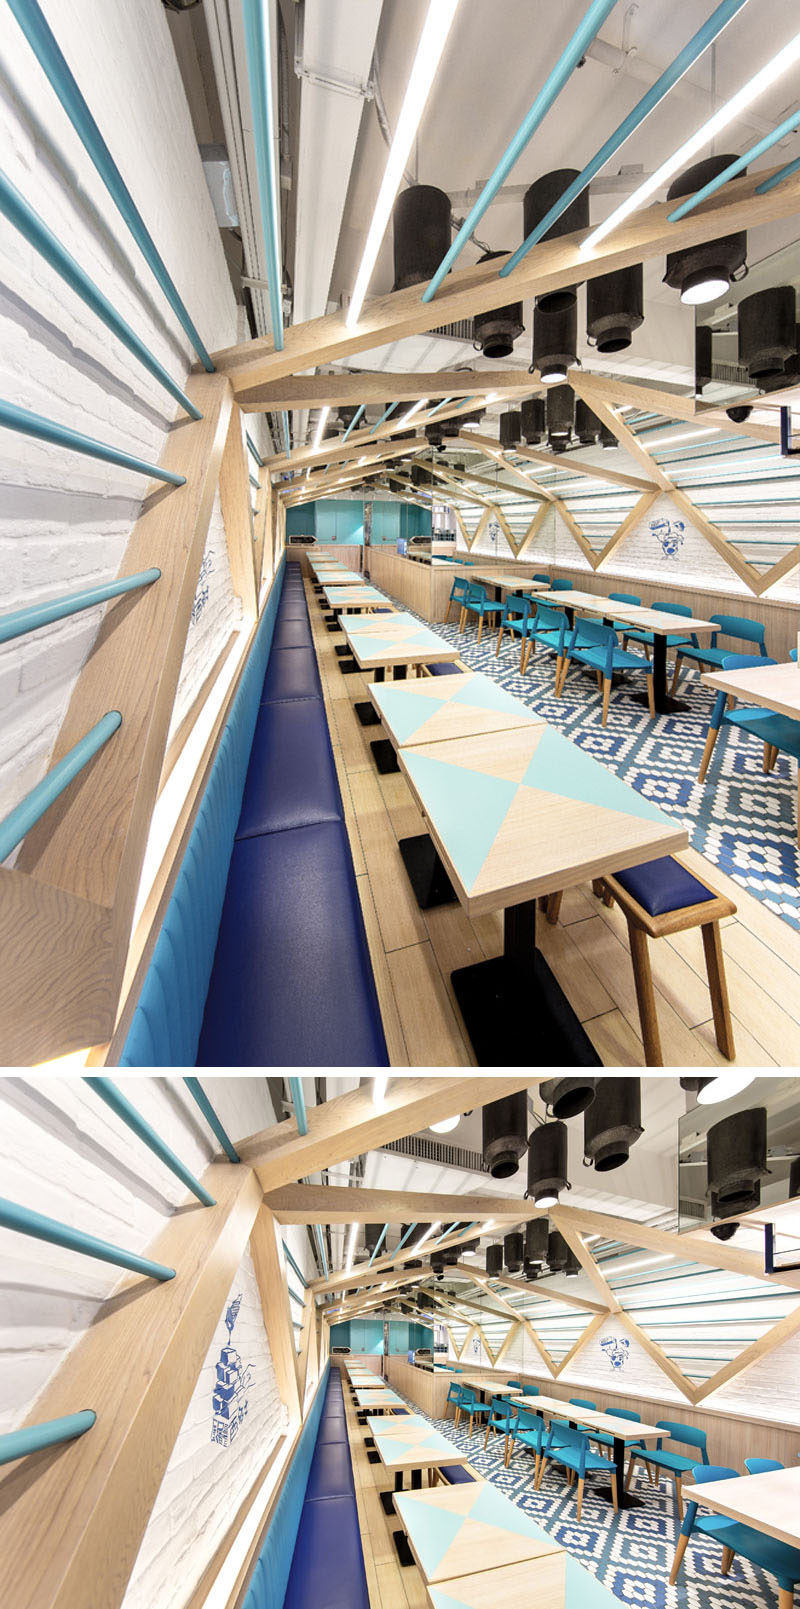 Blue banquette seating runs the length of one side of this modern restaurant, while tables and chairs have been arranged on the opposite wall, creating a cleanly organized and geometrical interior arrangement.